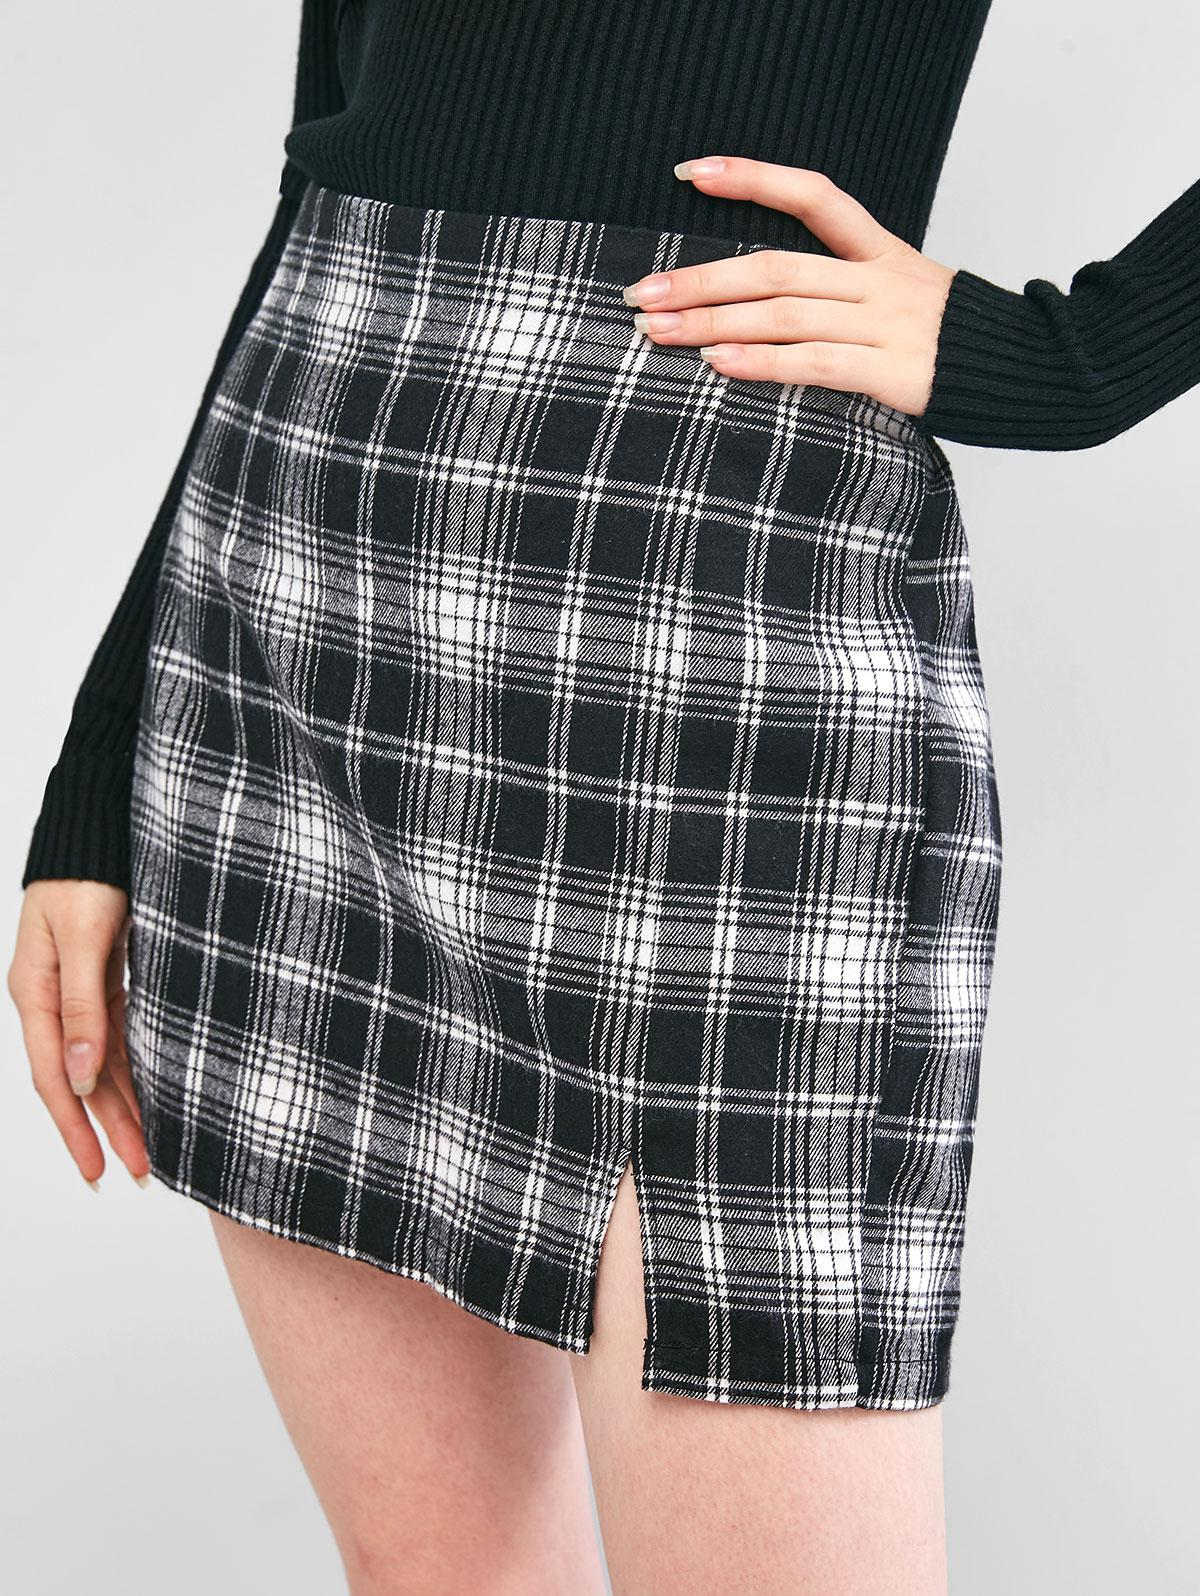 ZAFUL Plaid Slit A Line Skirt